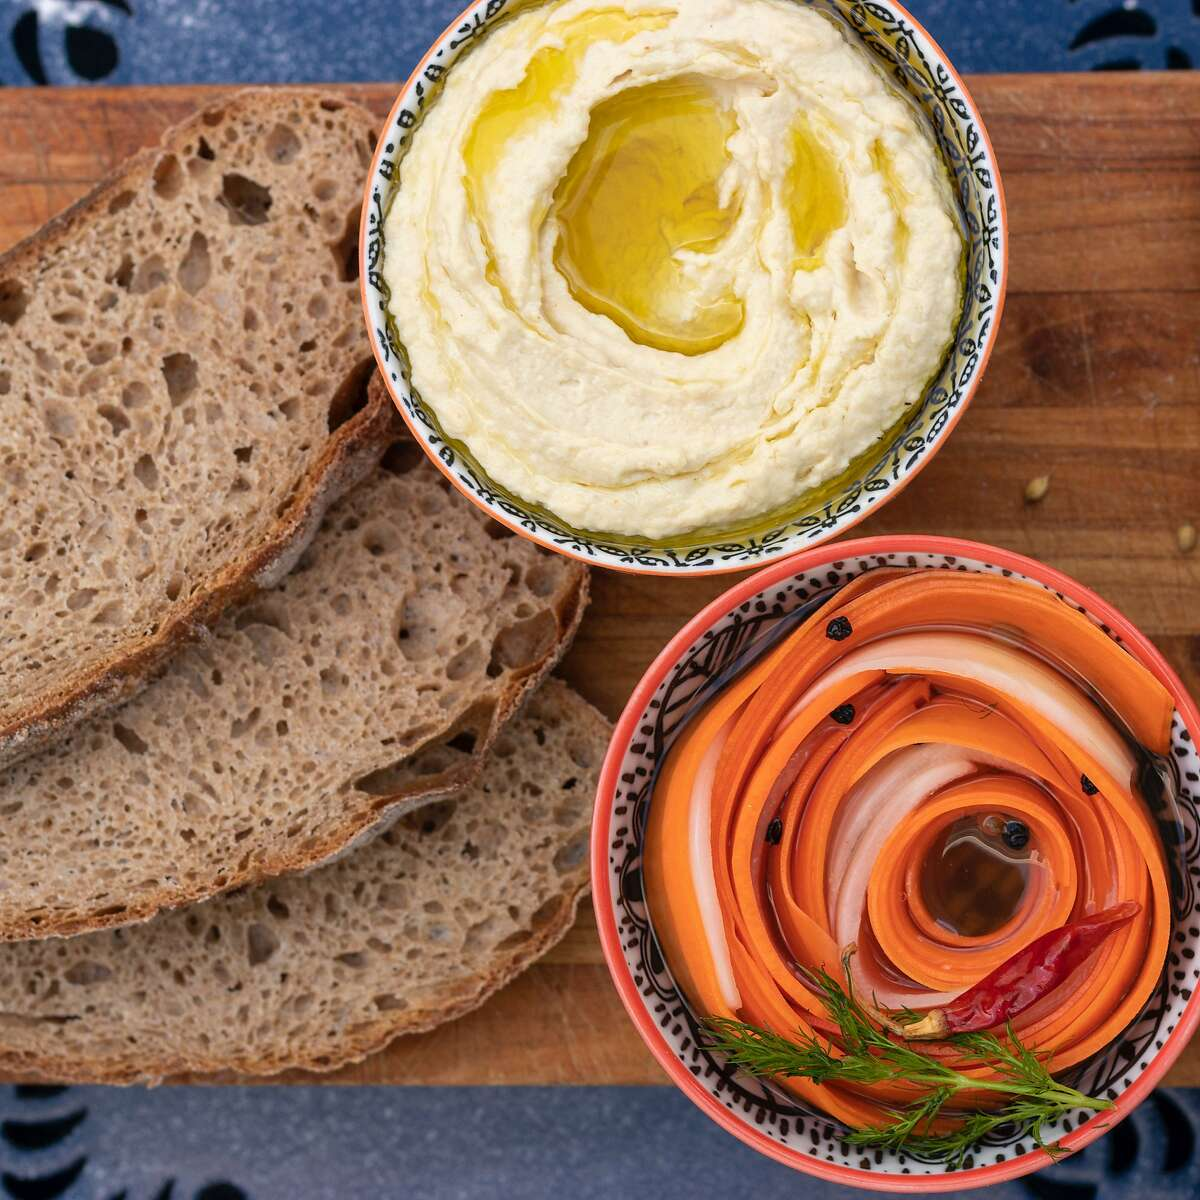 A set of bread, carrot pickles and hummus from pop-up Bread Spread Pickle. The pop-up has now closed.